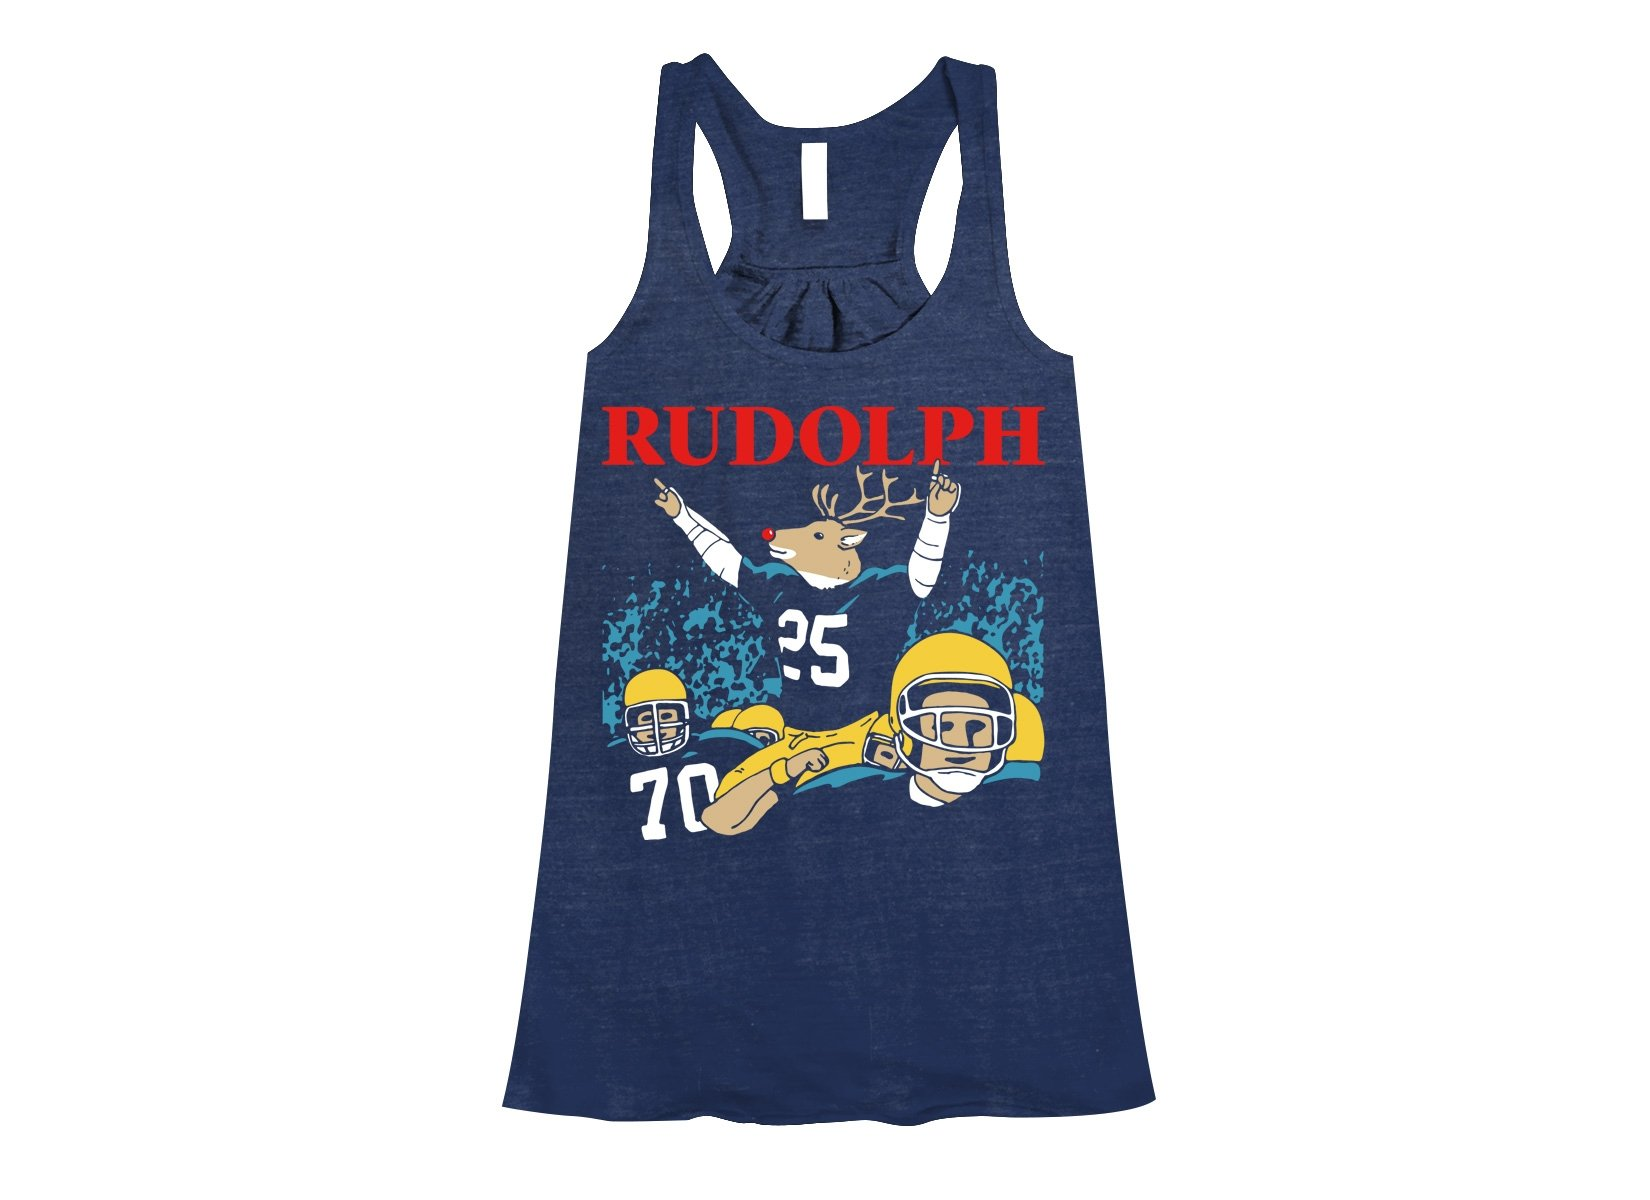 Rudolph on Womens Tanks T-Shirt